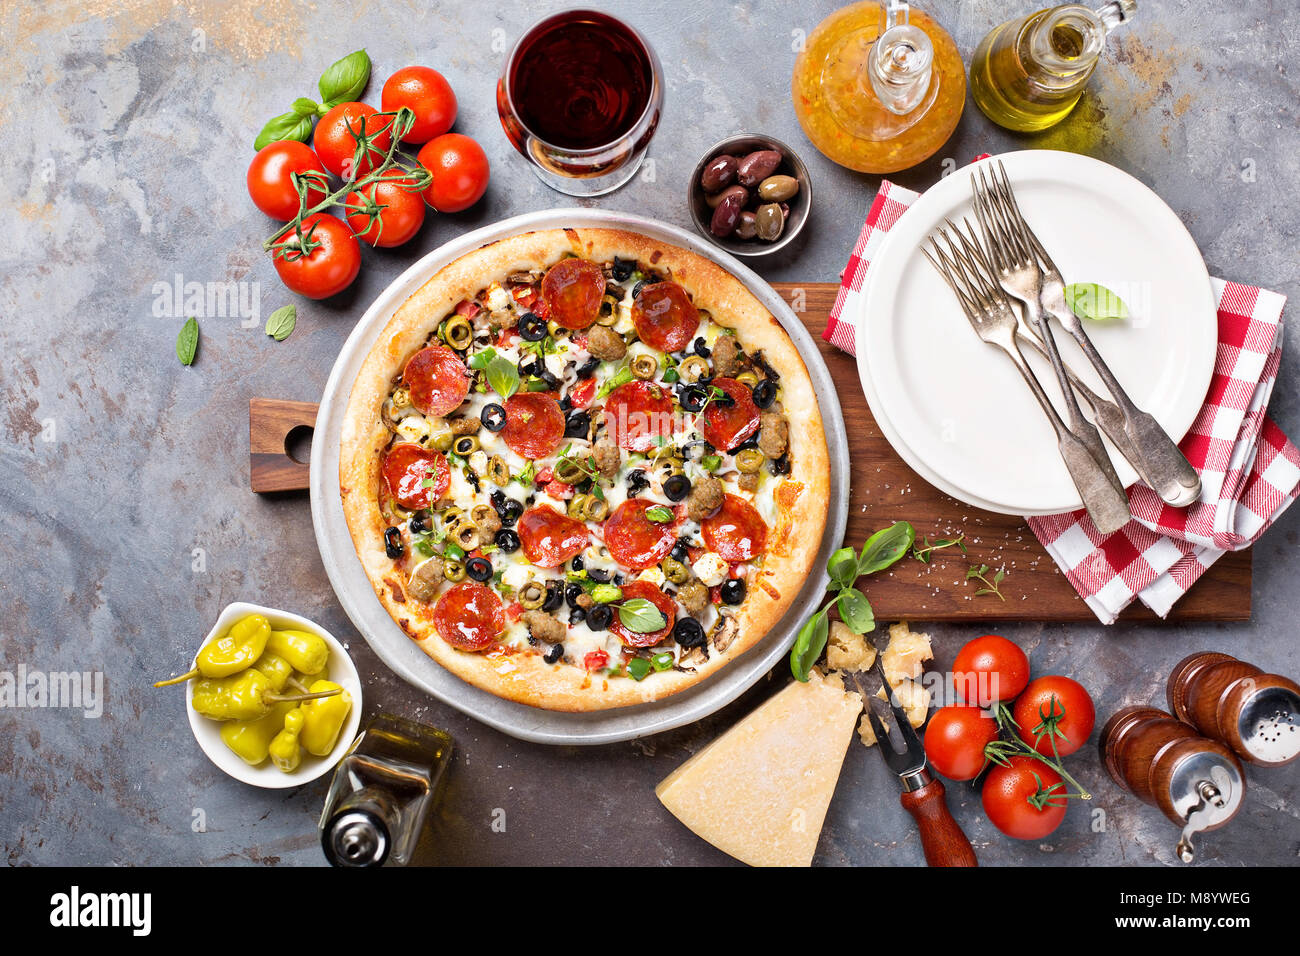 Pepperoni pizza with olives - Stock Image